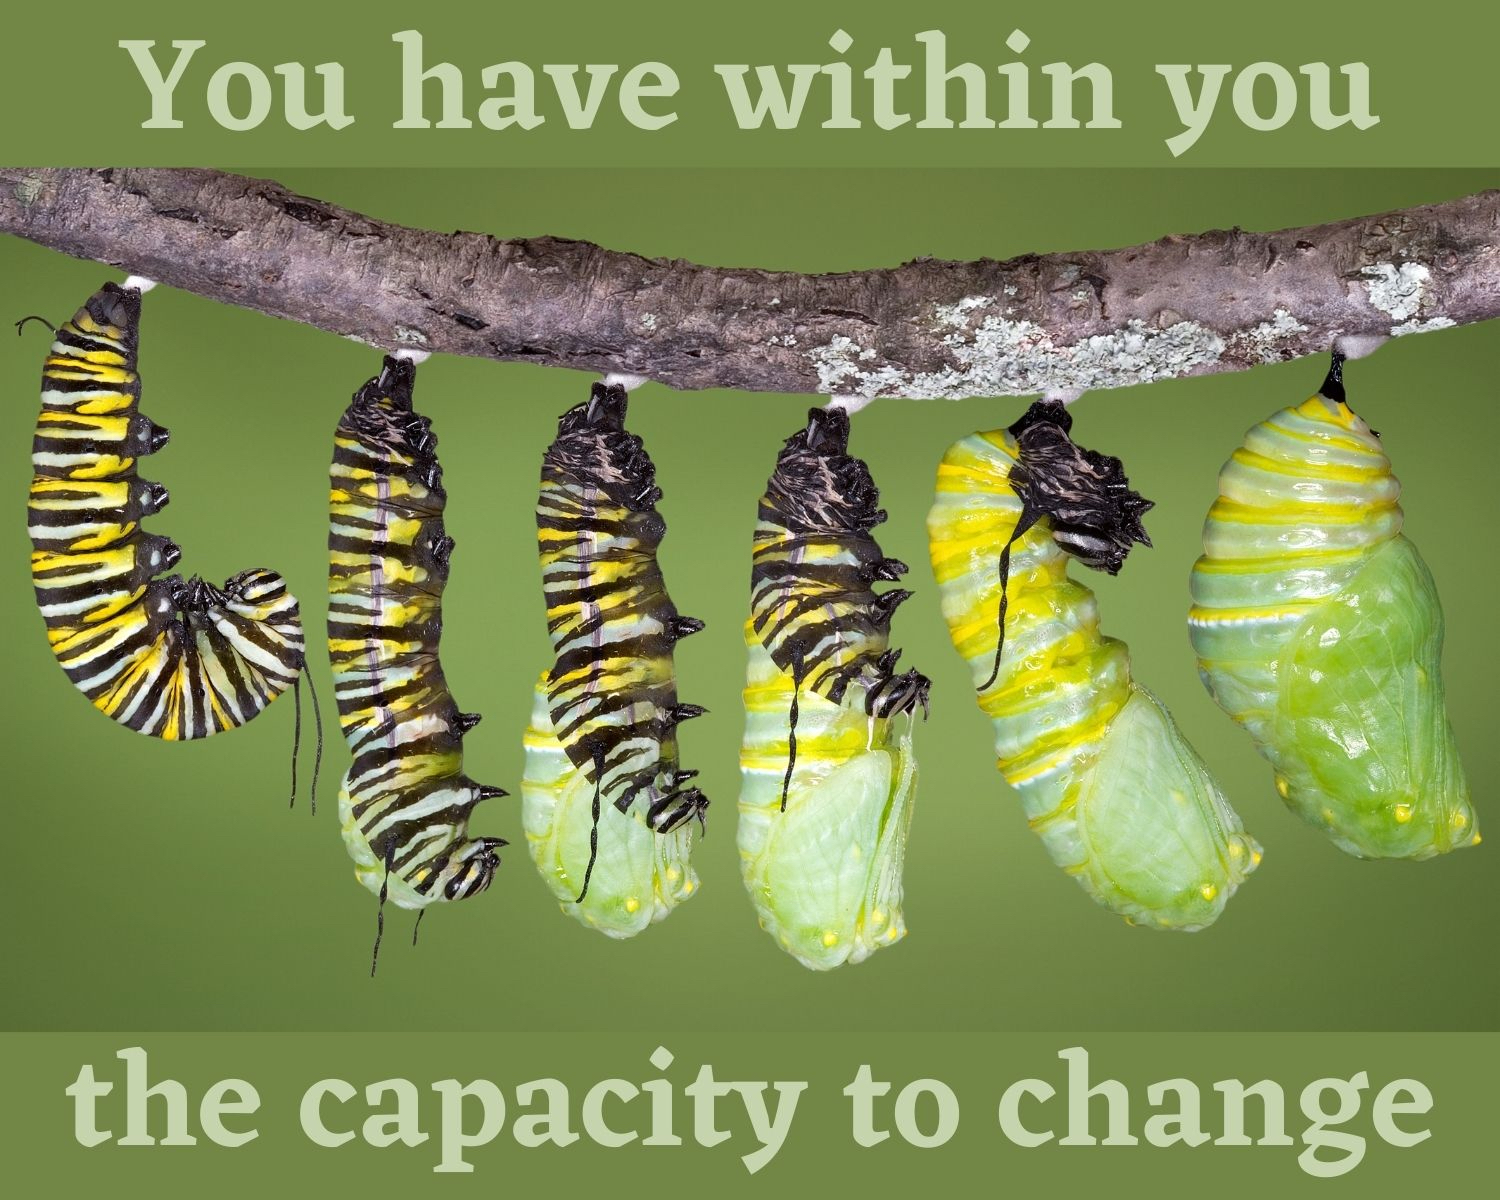 You have within you the capacity to change - text with image of monarch caterpillar creating its cocoon